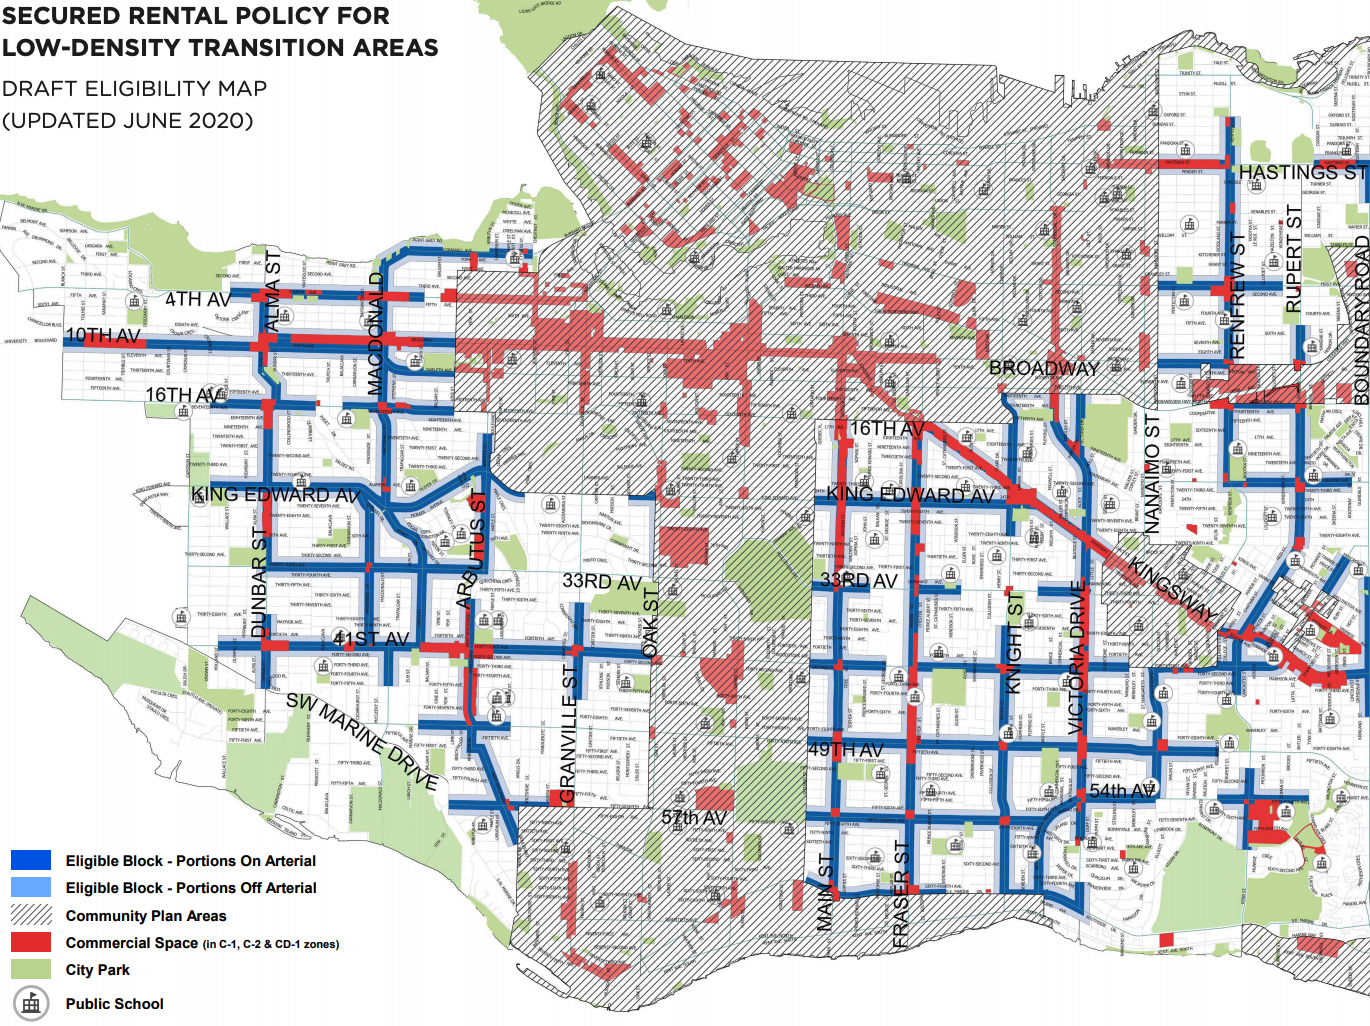 vancouver secured rental zoning for low-density transition areas